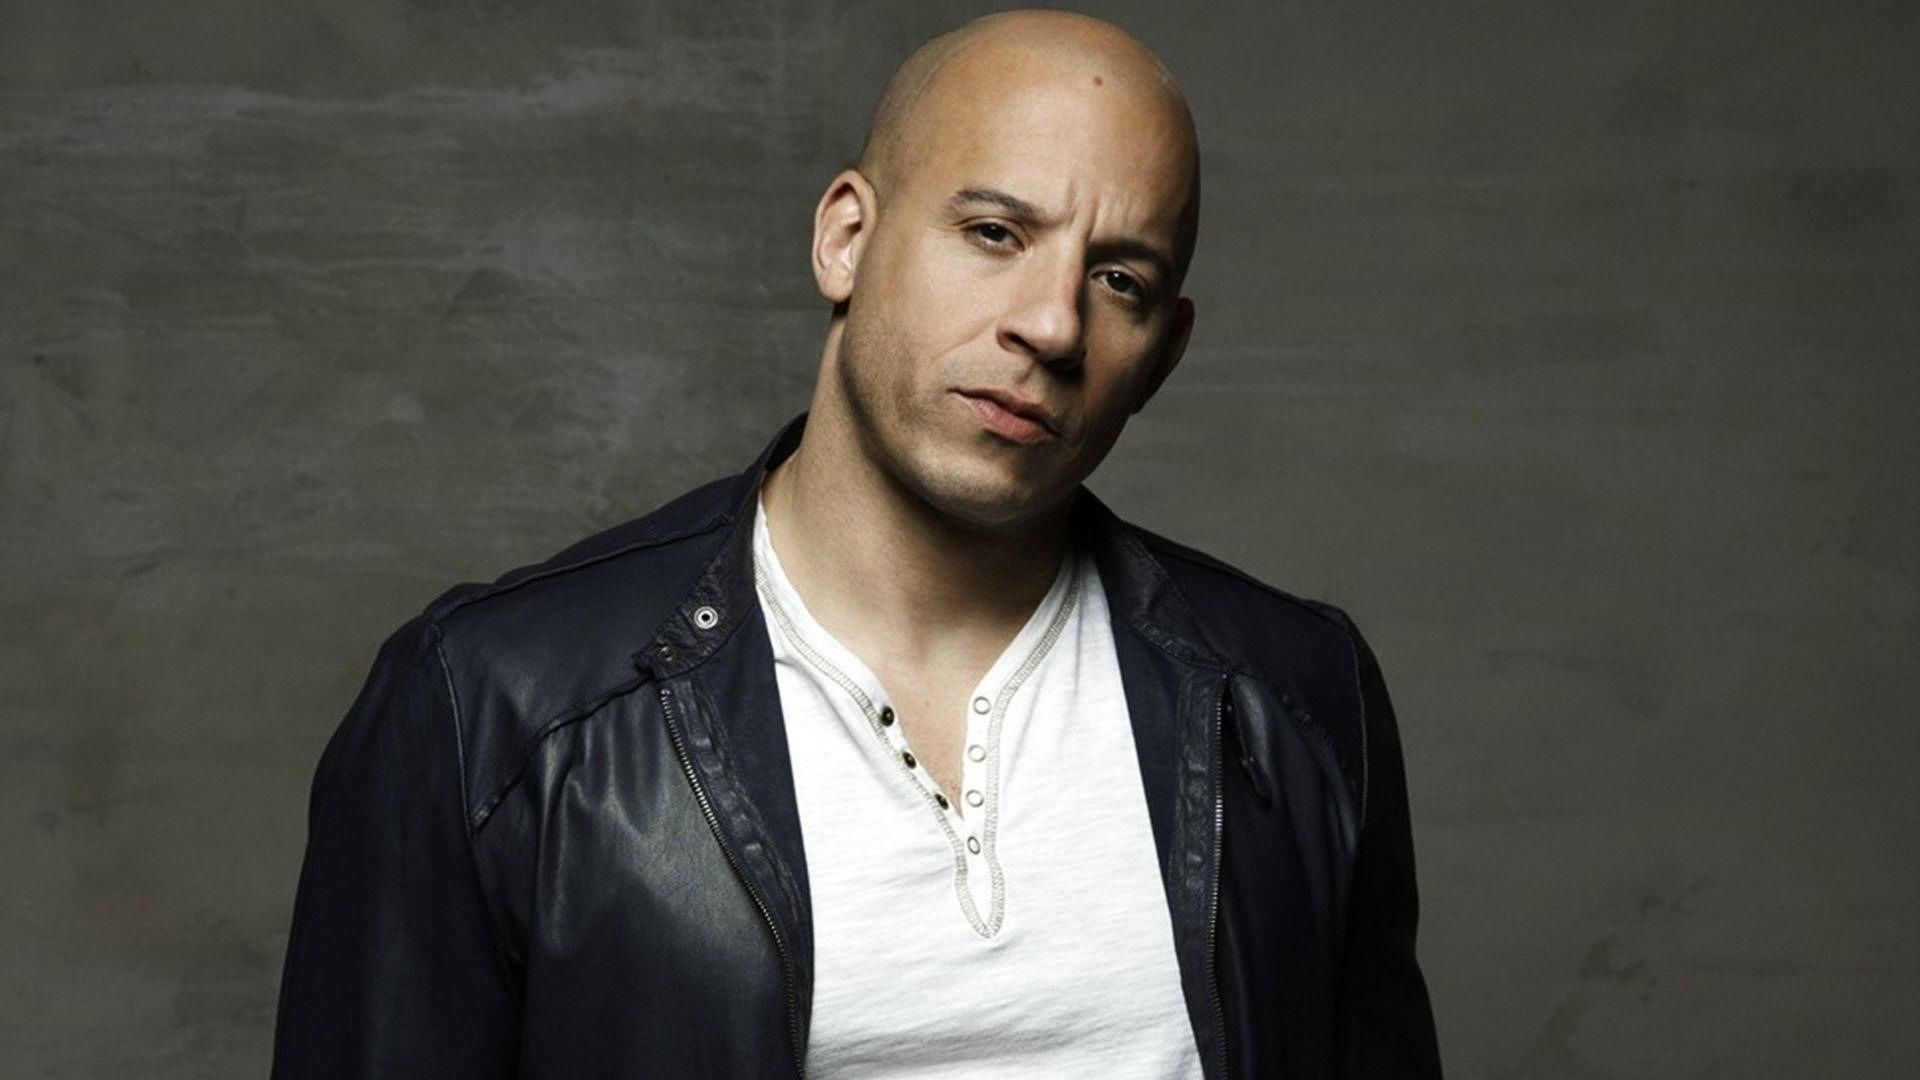 vin diesel hd desktop wallpapers | 7wallpapers